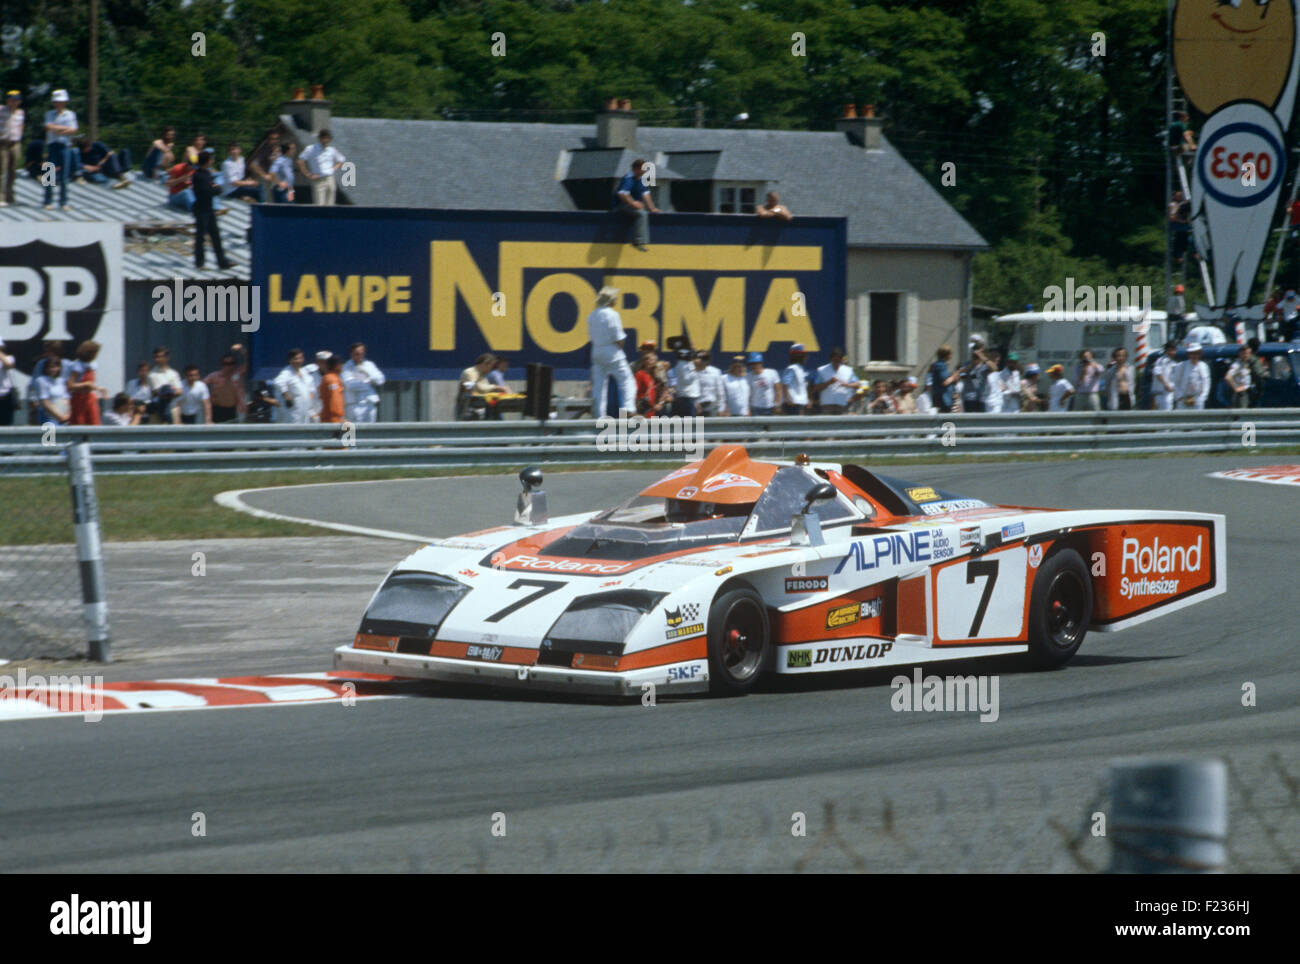 7 Bob Evans and Tony Trimmer Dome in the Ford Chicane at Le Mans 9 June 1979 - Stock Image